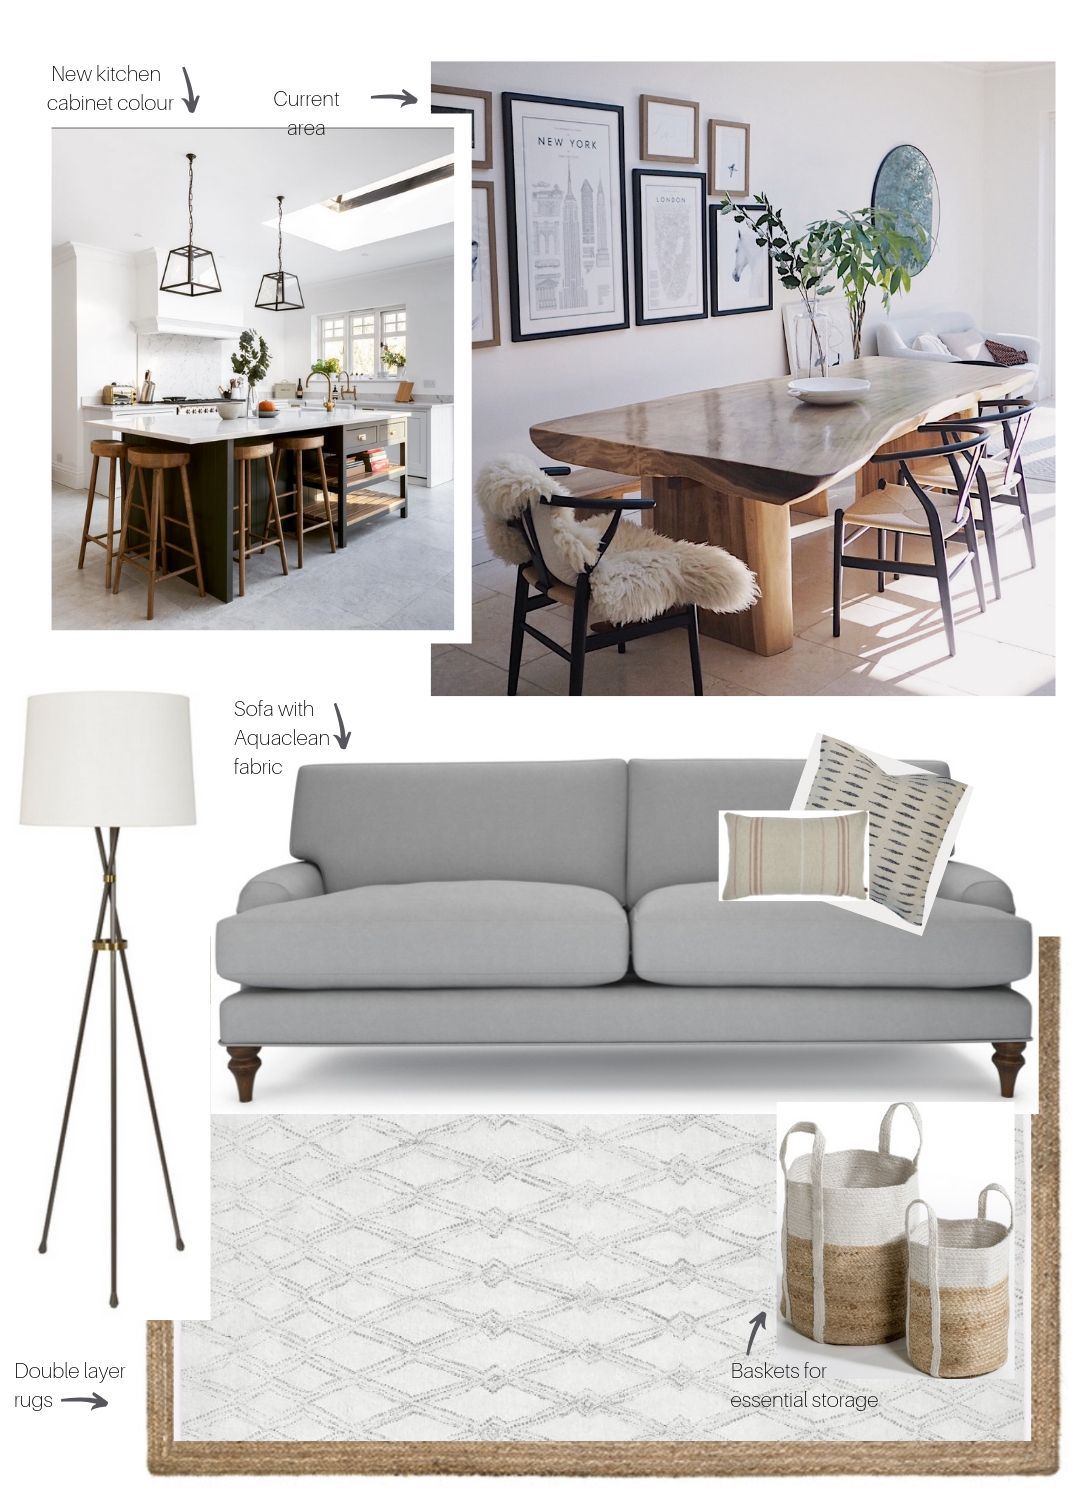 Moodboard for revamp of my kitchen living area